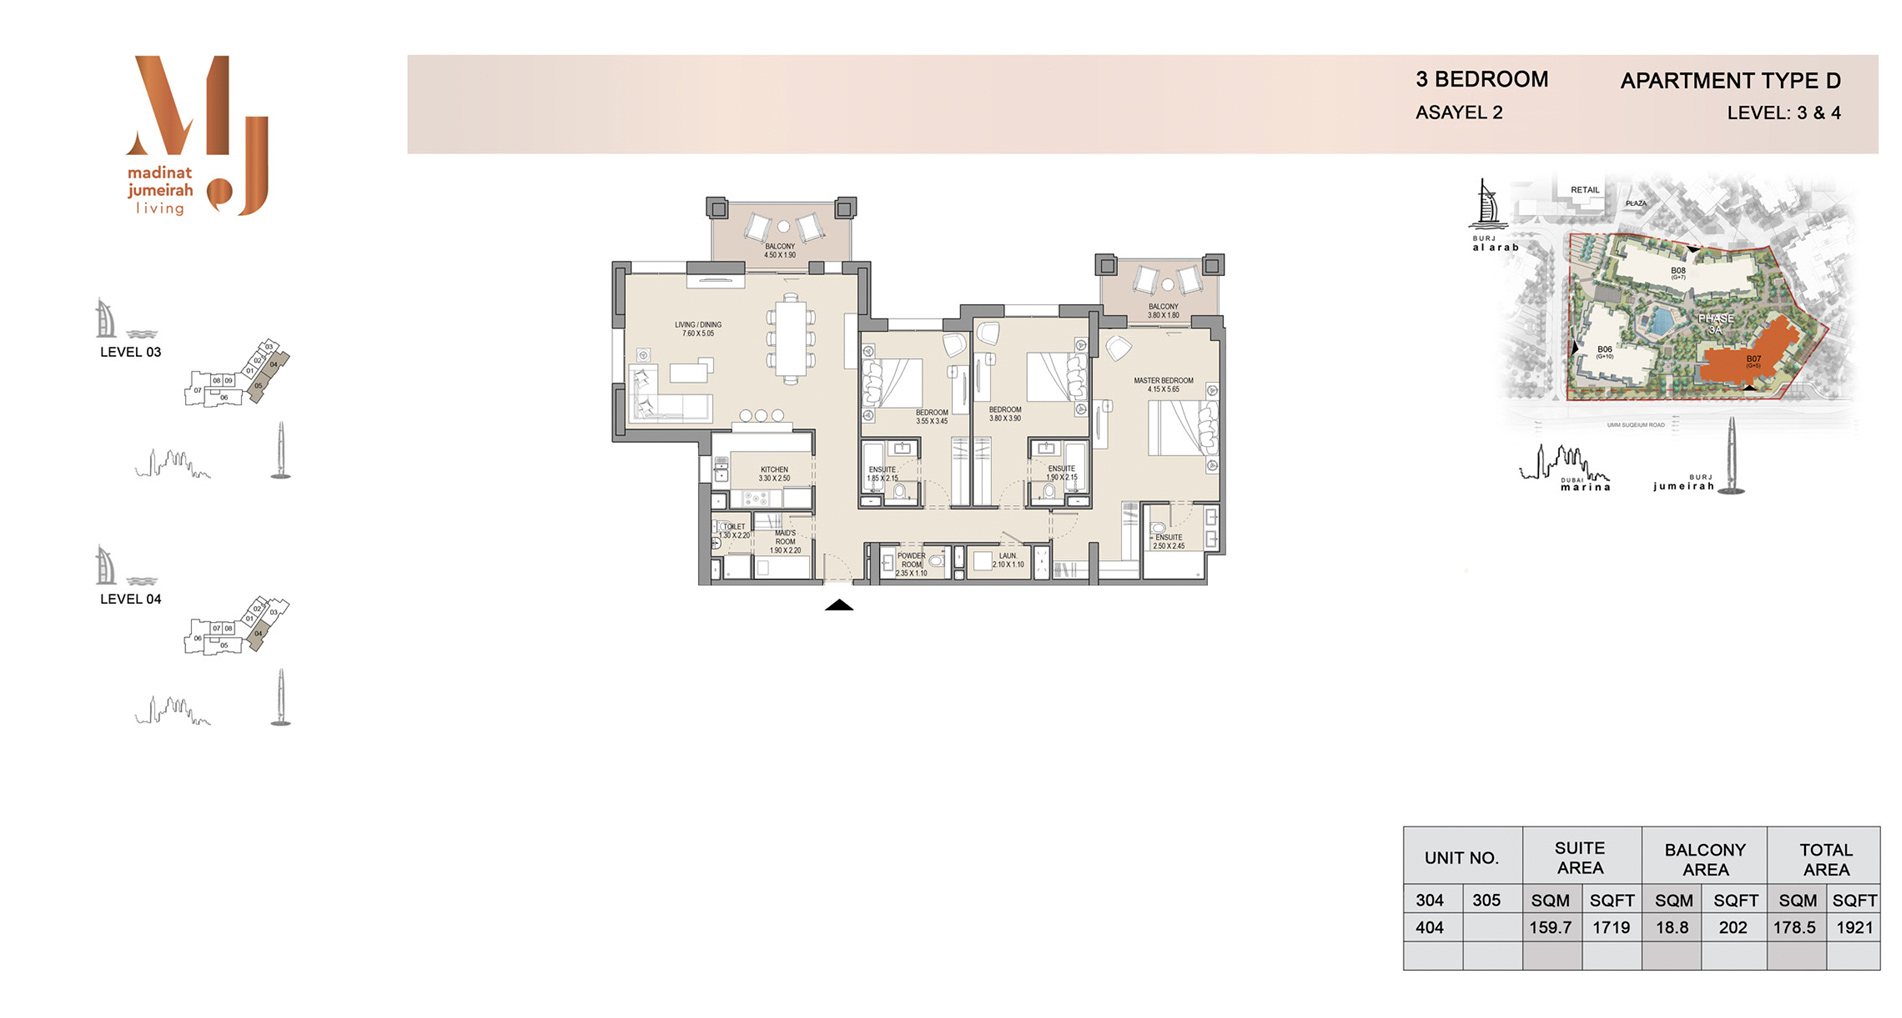 Building 2, 3 Bed Type D Level 3 to 4, Size 1921    sq. ft.